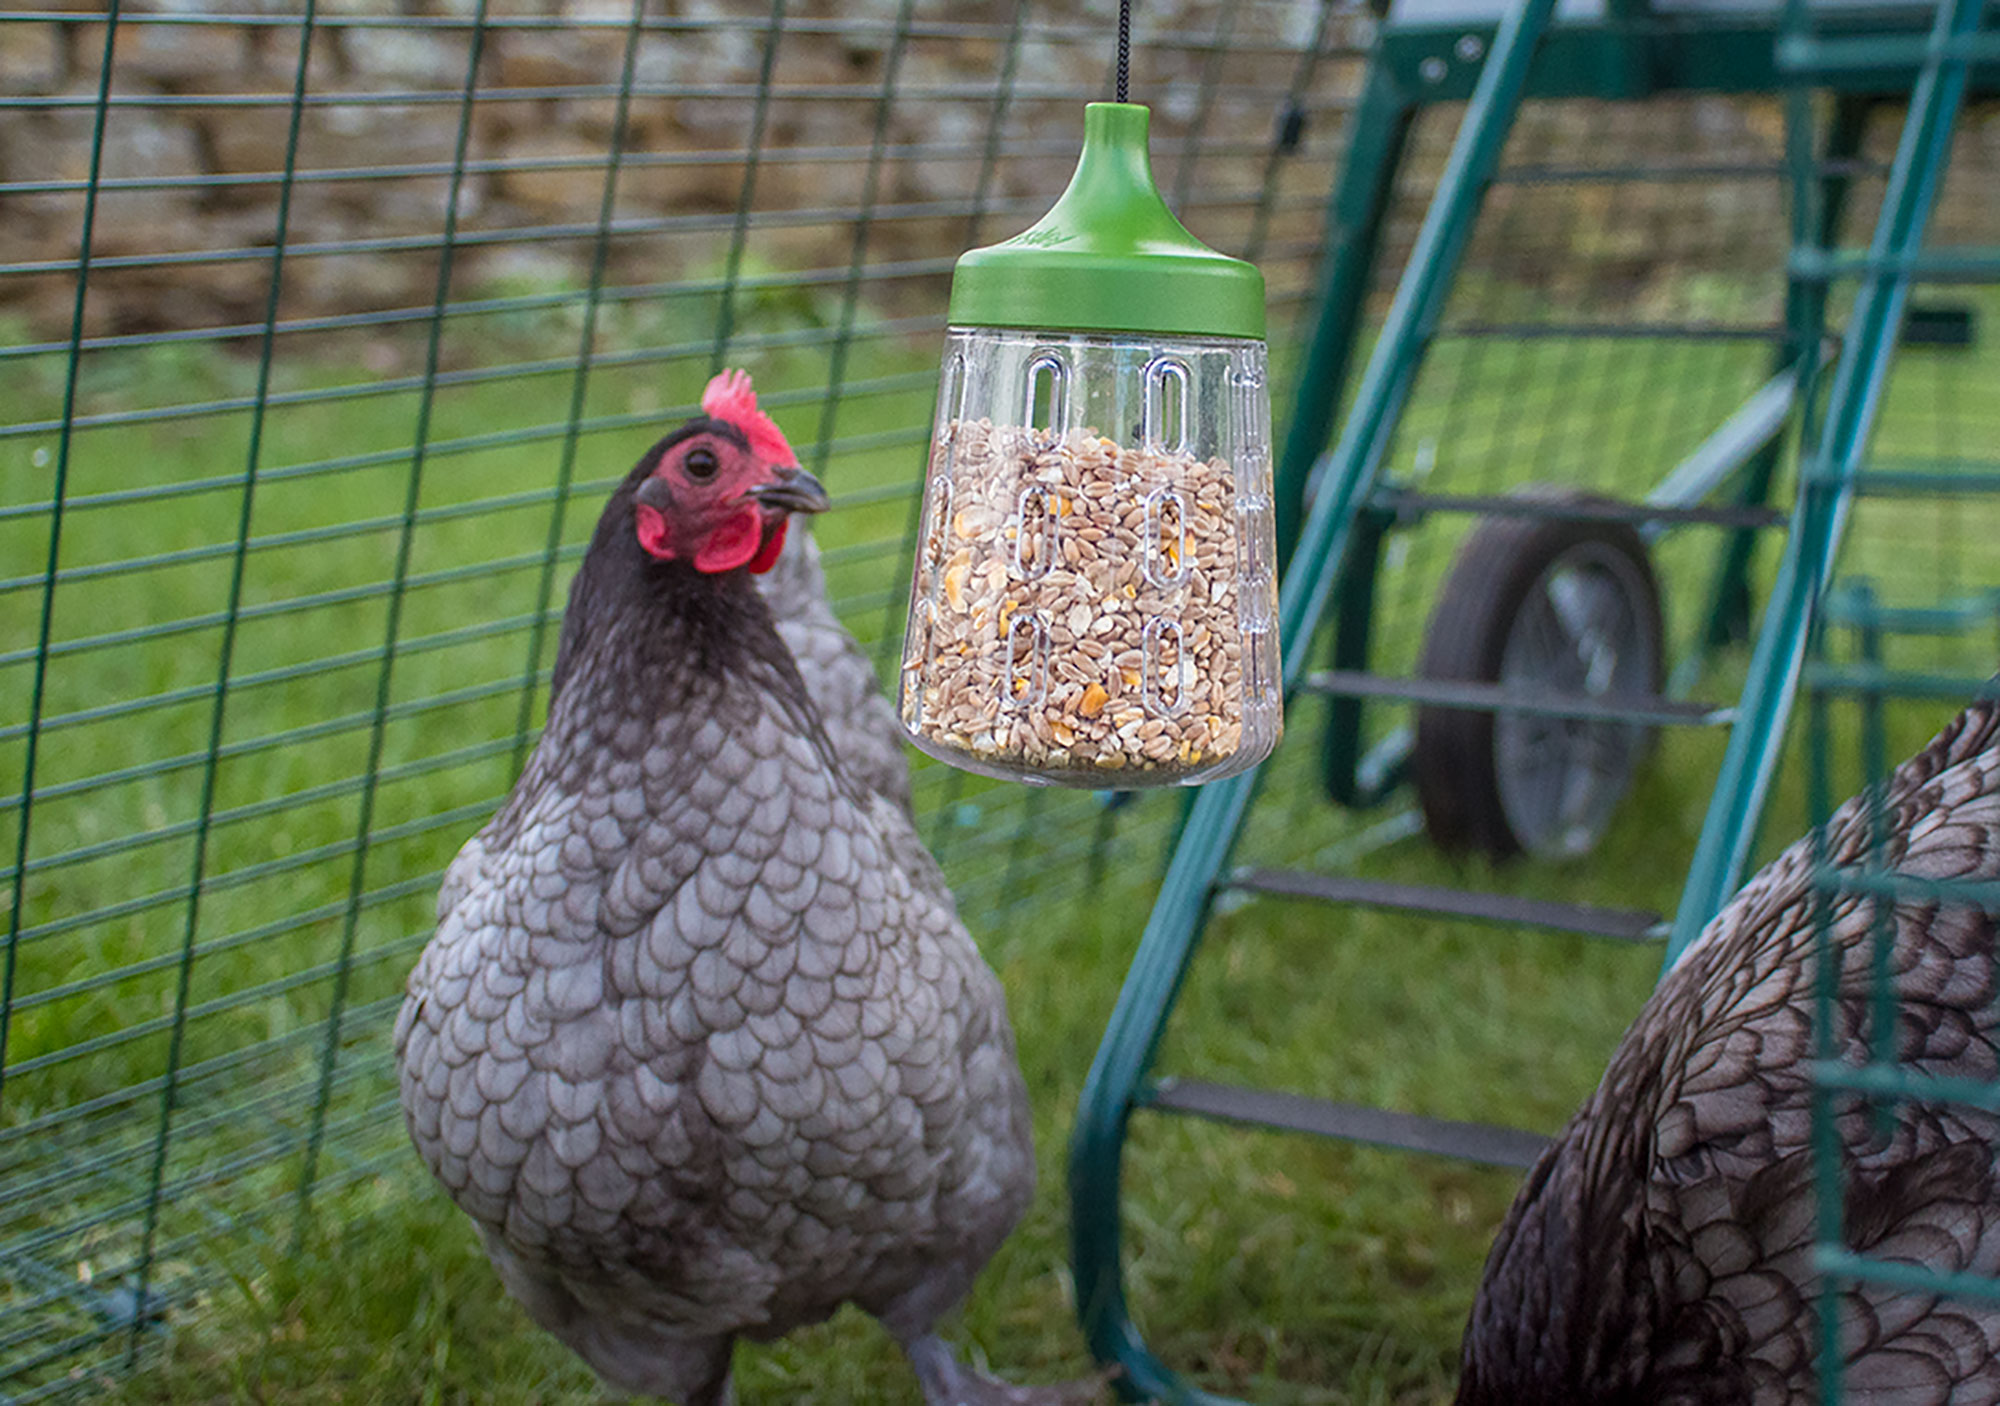 Chickens enjoy using their Rocky Peck Toy